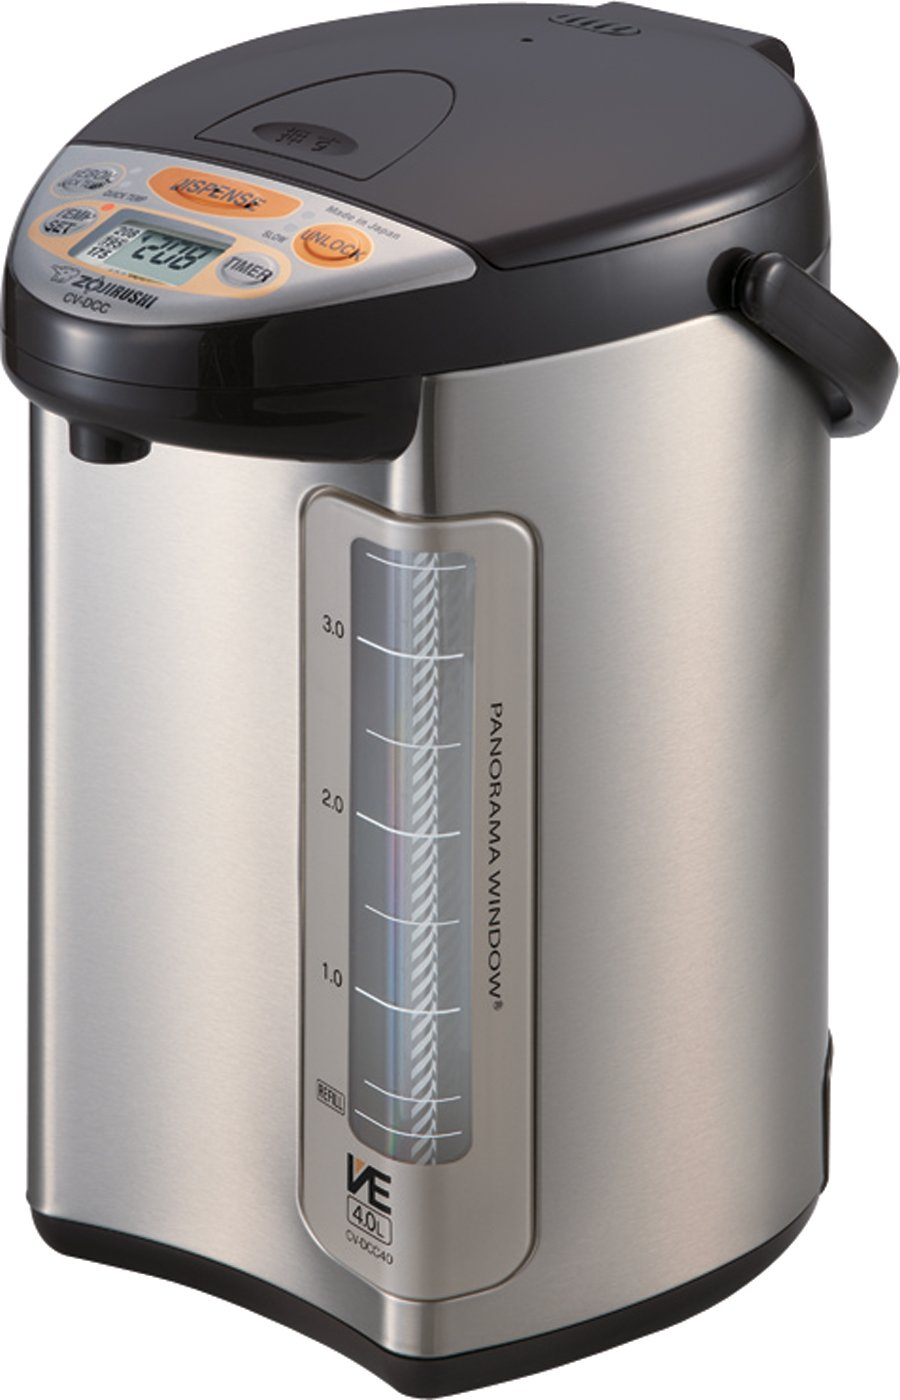 Zojirushi America Corporation CV-DCC40XT VE Hybrid Water Boiler and Warmer, 4-Liter, Stainless Dark Brown